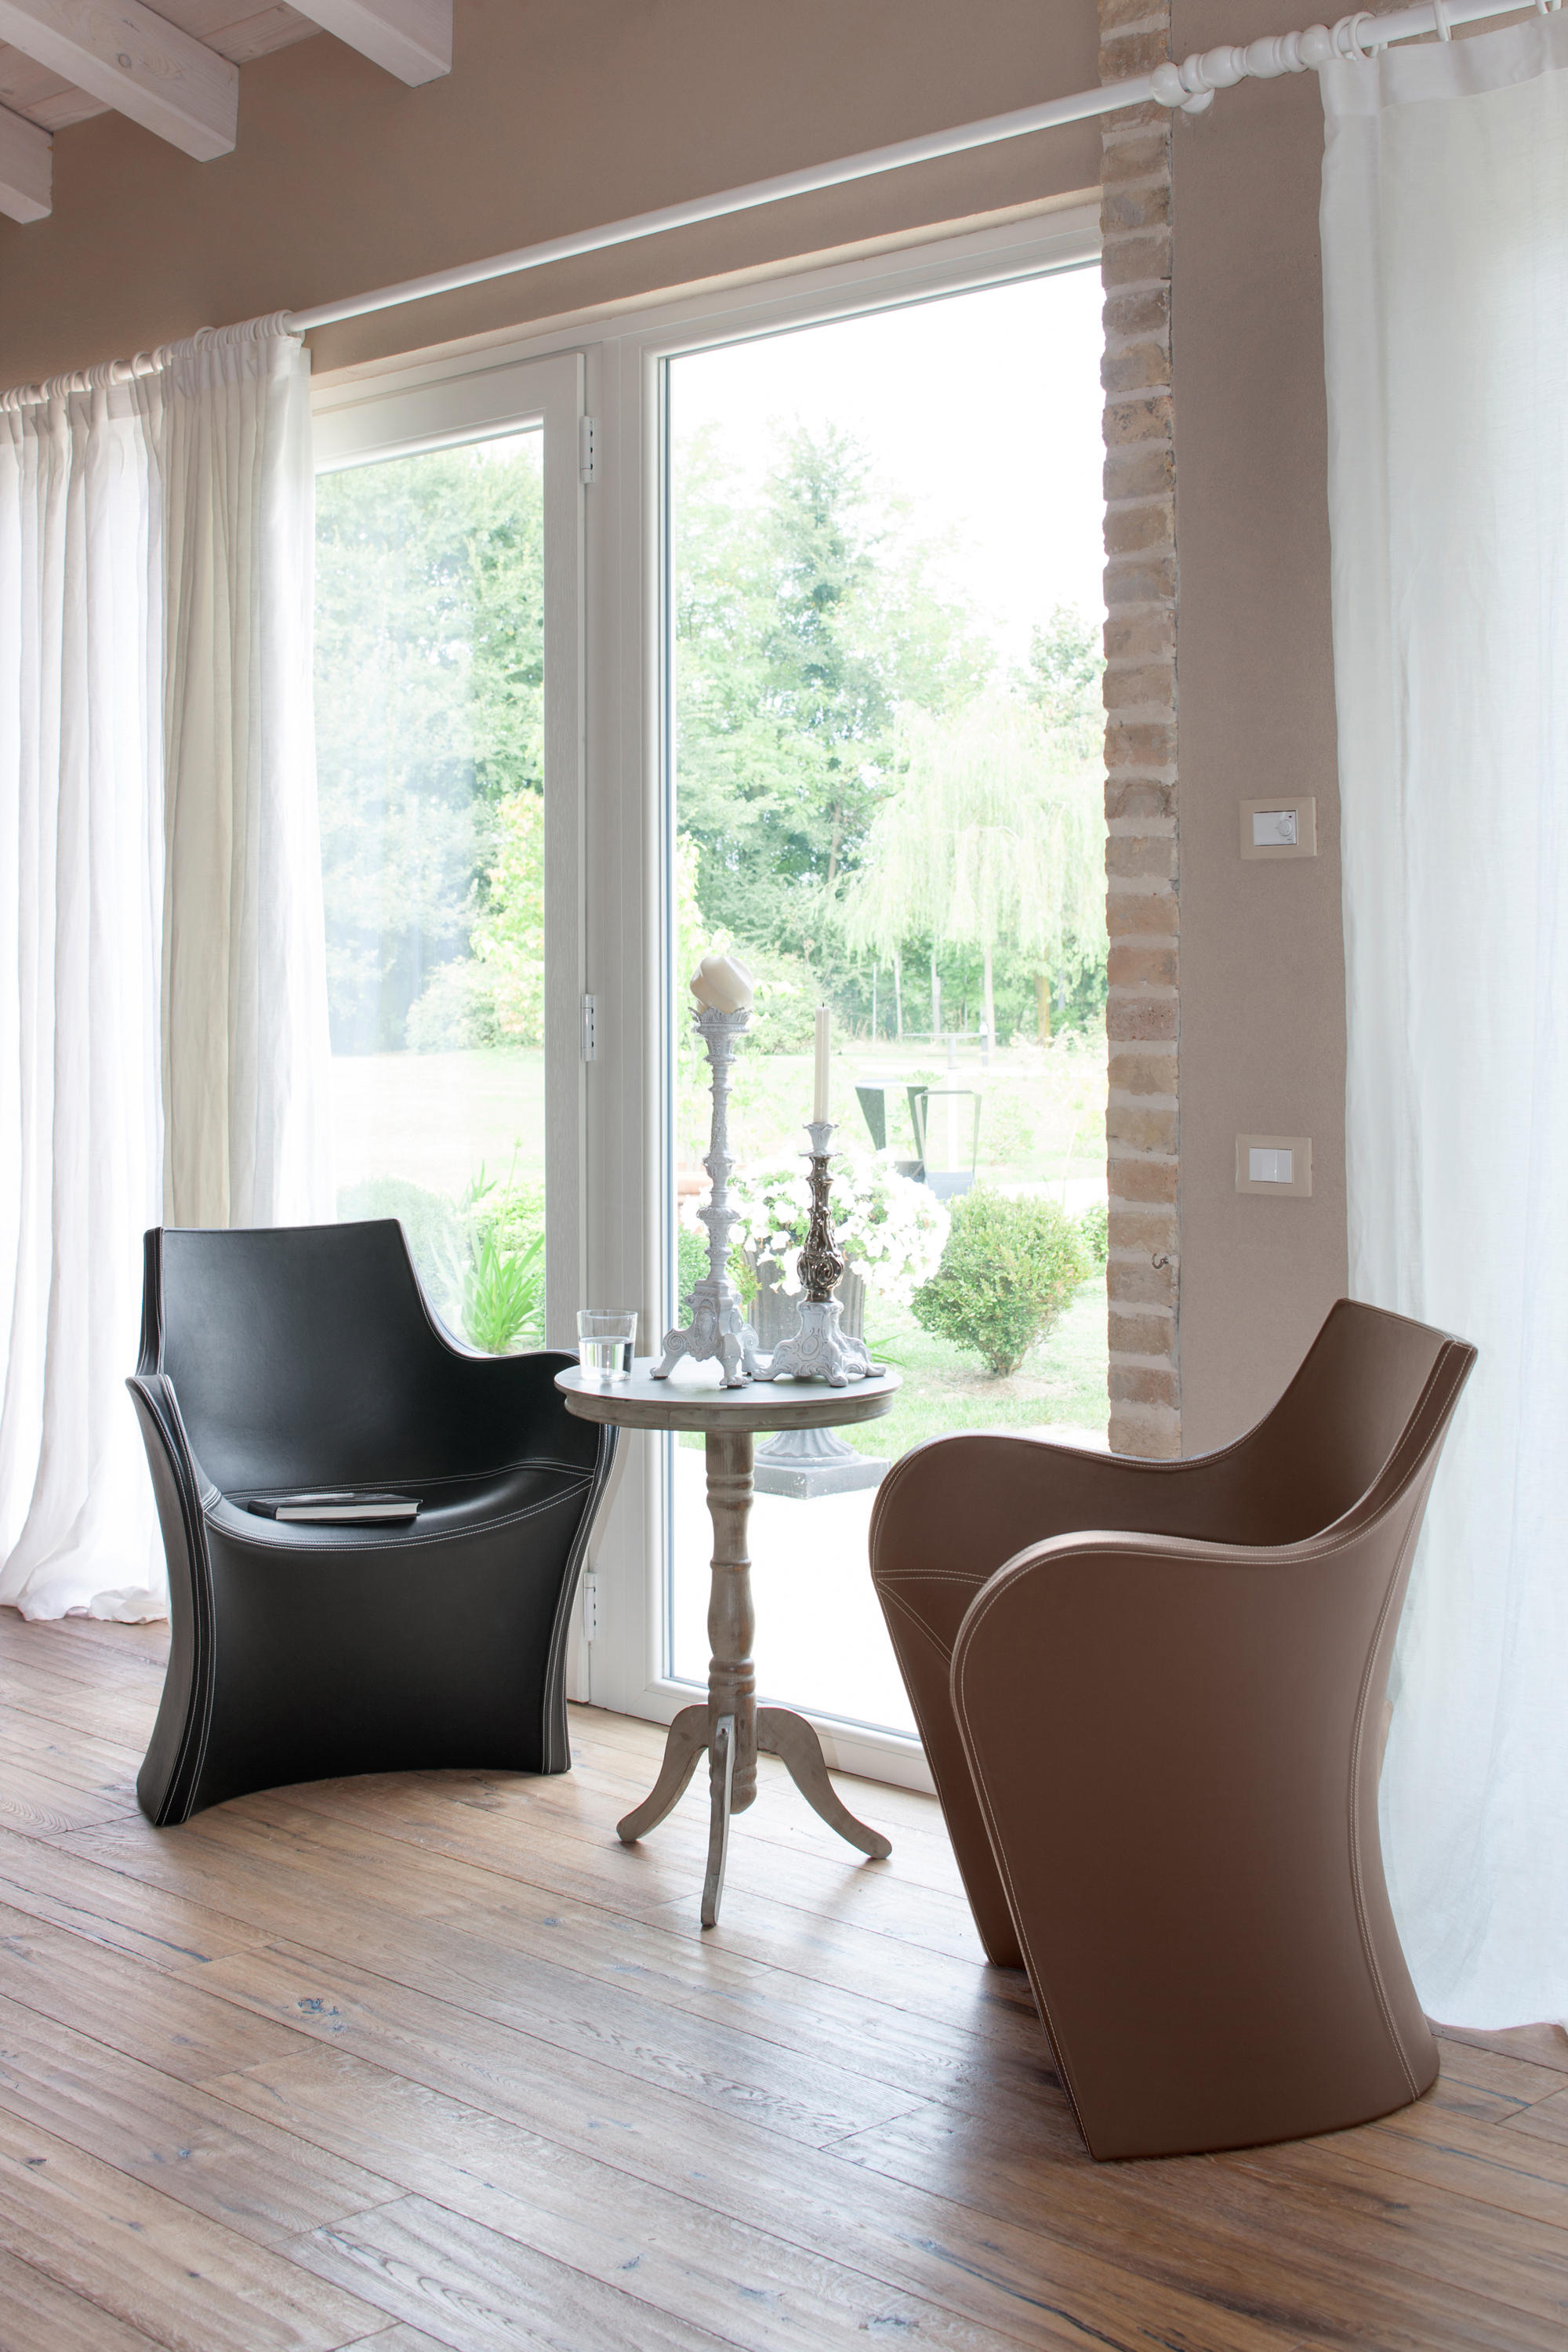 Woopy Chairs From B Line Architonic